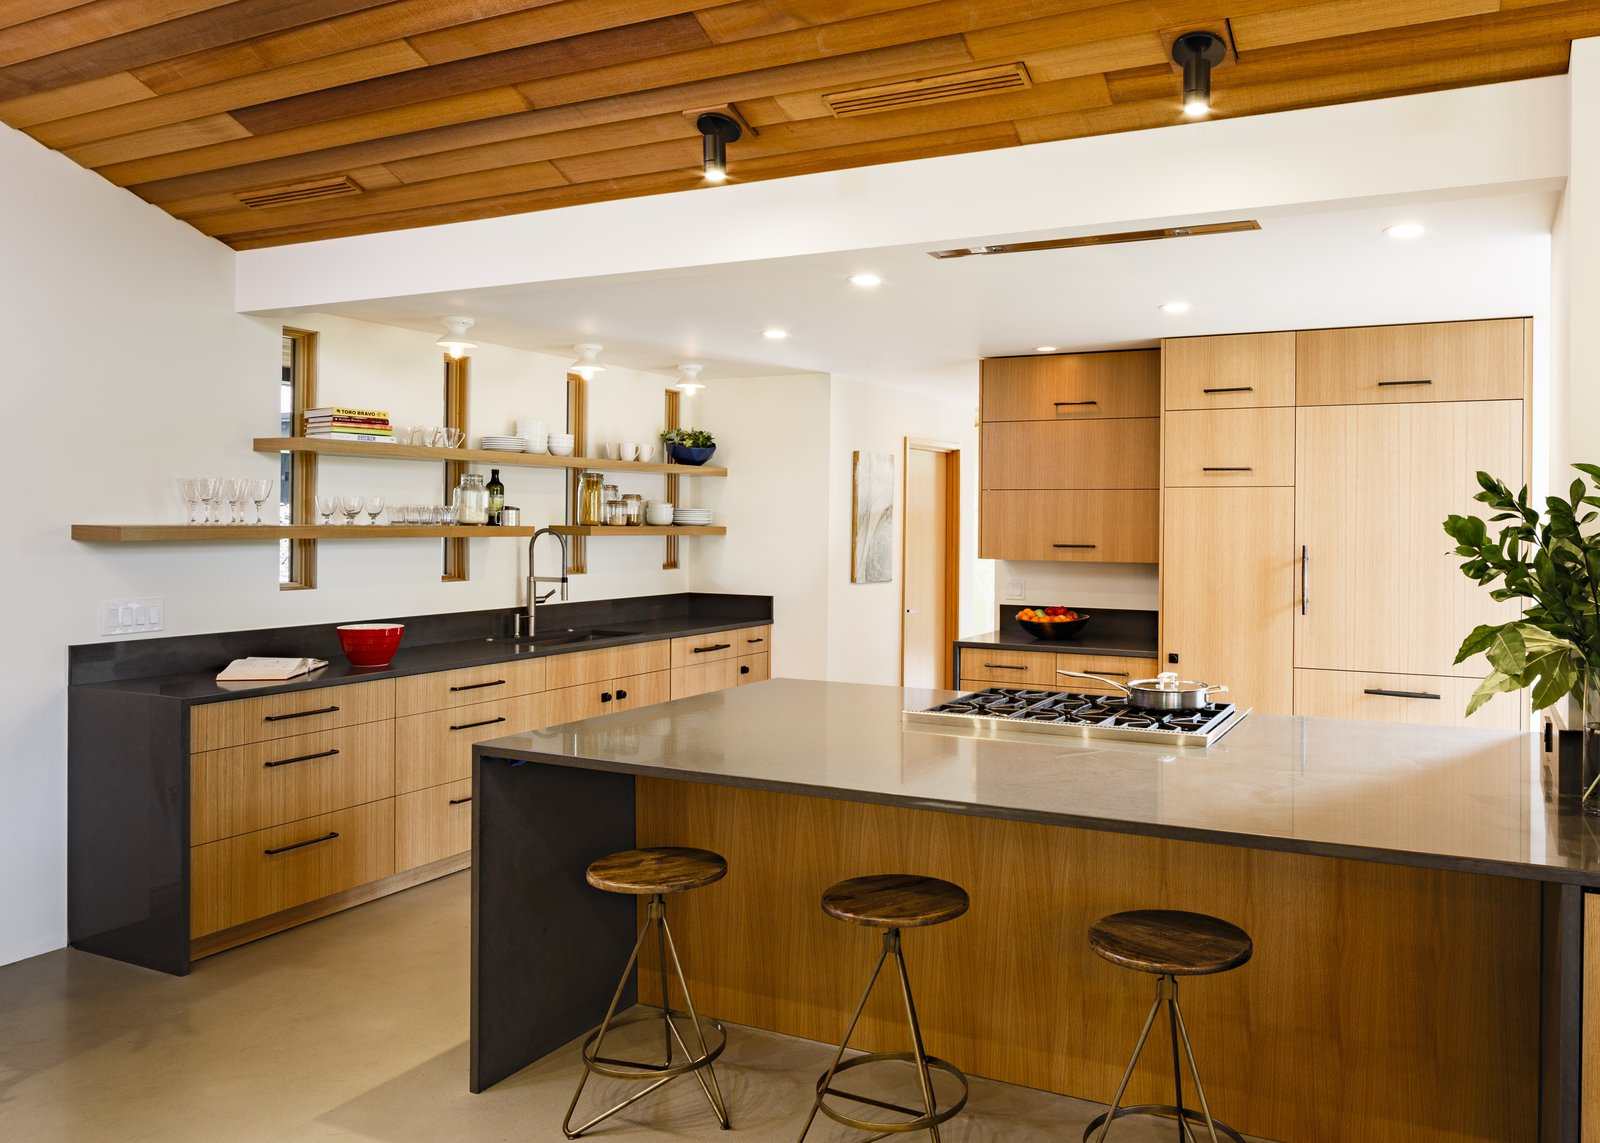 Before & After: A Midcentury Lakeside Home Receives a Stunning New Look